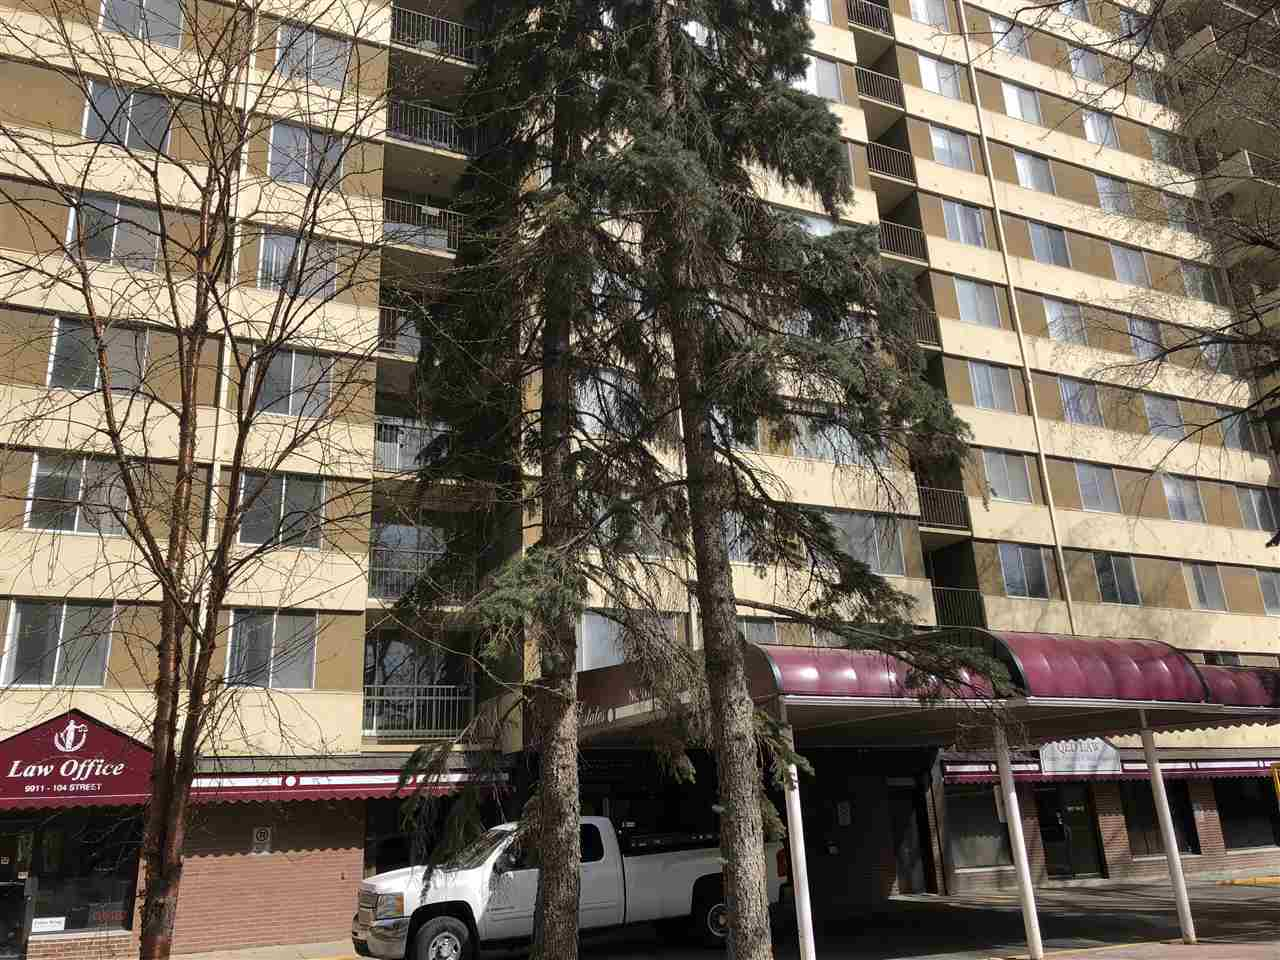 Photo of #206 9909 104 St NW